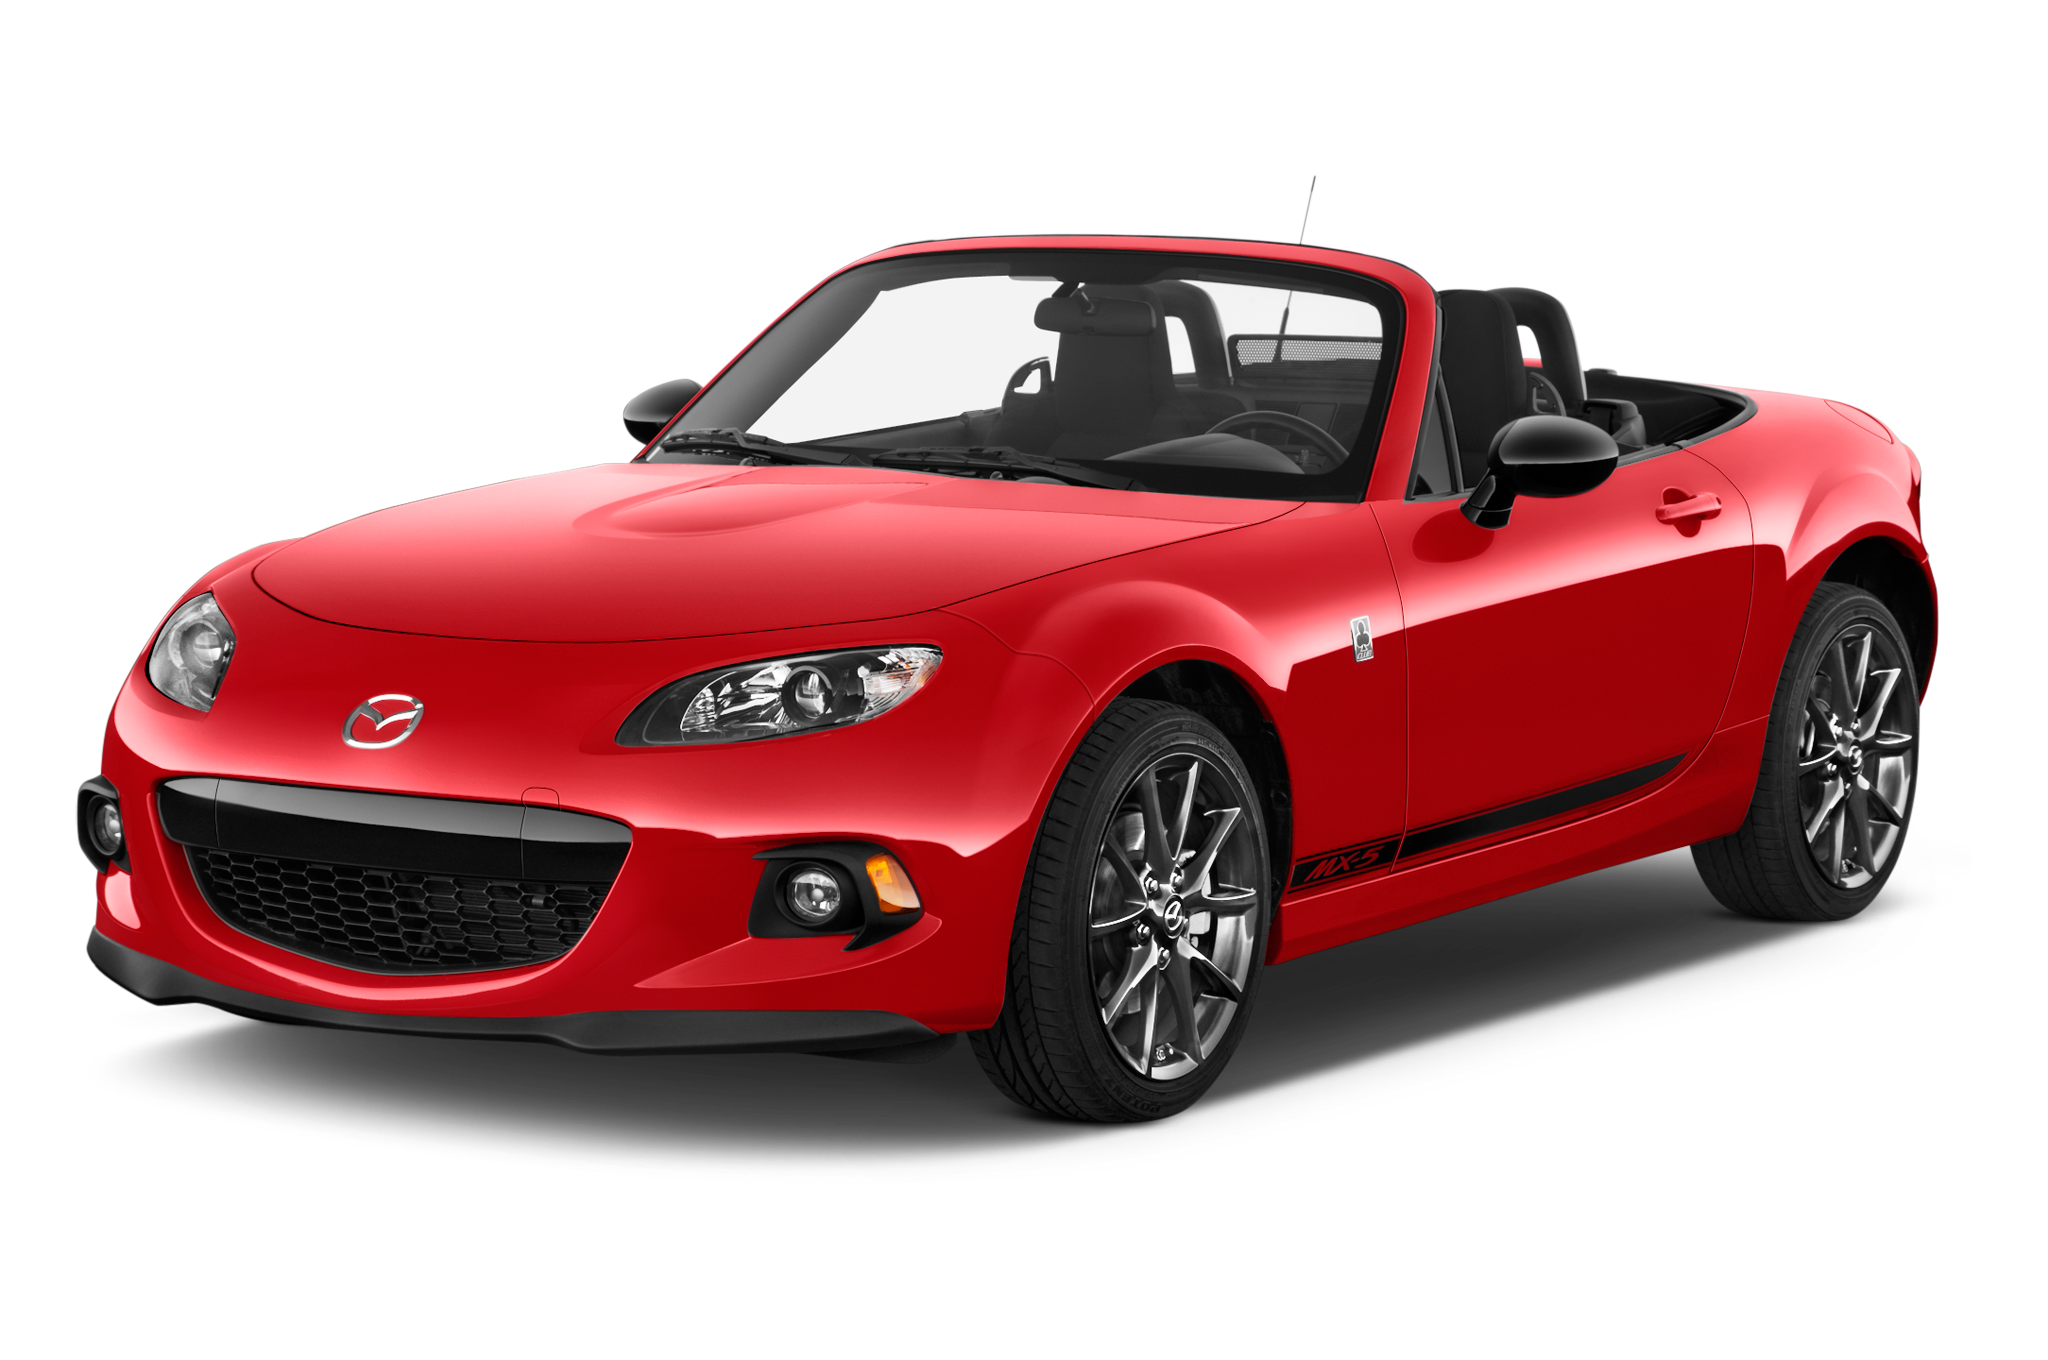 then vs now 2014 mazda mx 5 miata vs 1991 mazda mx 5 miata. Black Bedroom Furniture Sets. Home Design Ideas